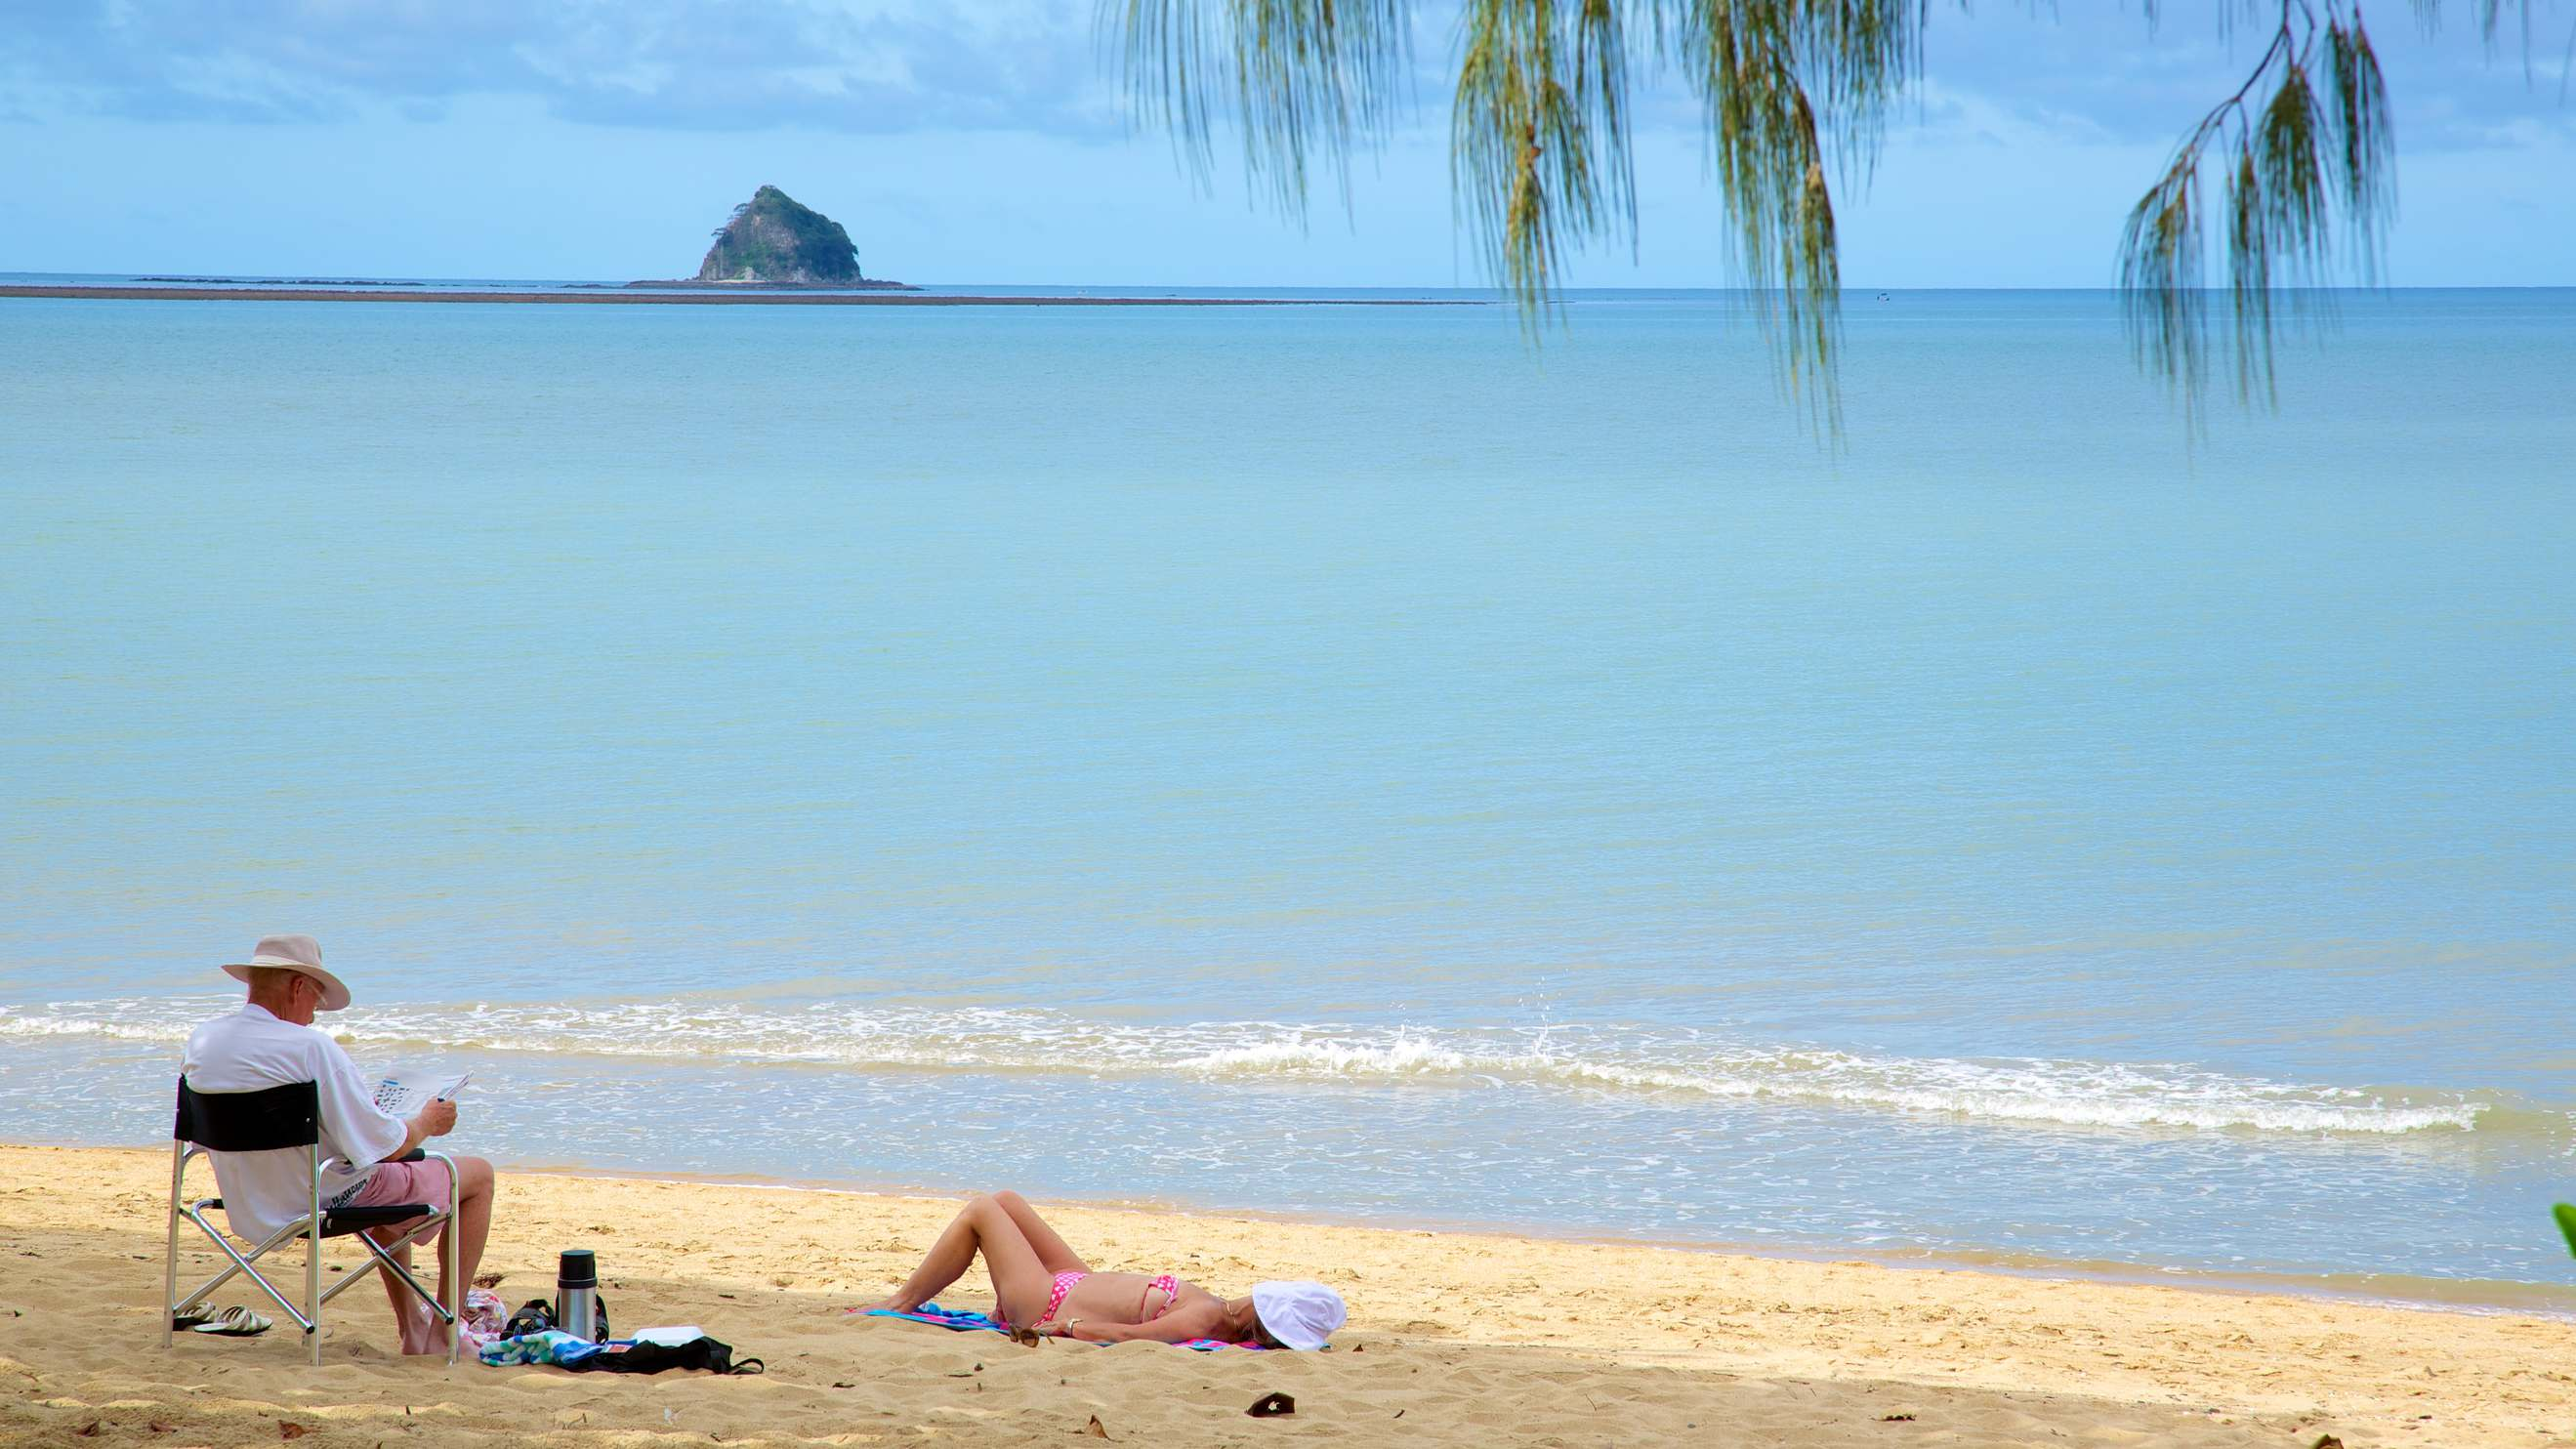 North Queensland Holiday Packages Palm Cove Holidays Cheap Palm Cove Holiday Packages Deals